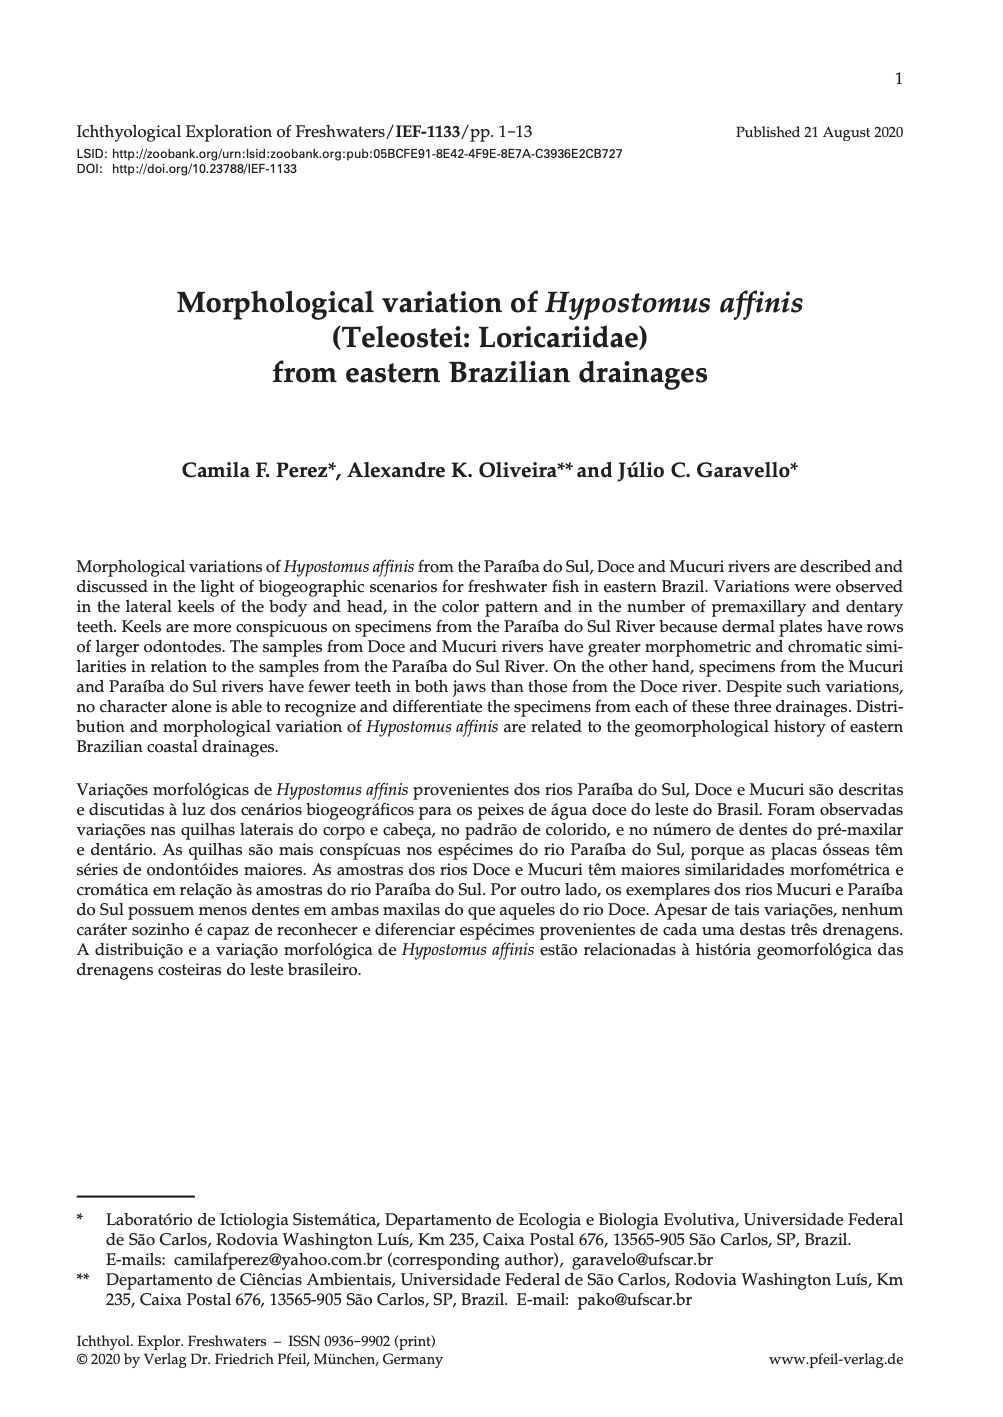 Morphological variation of Hypostomus affinis (Teleostei: Loricariidae) from eastern Brazilian drainages